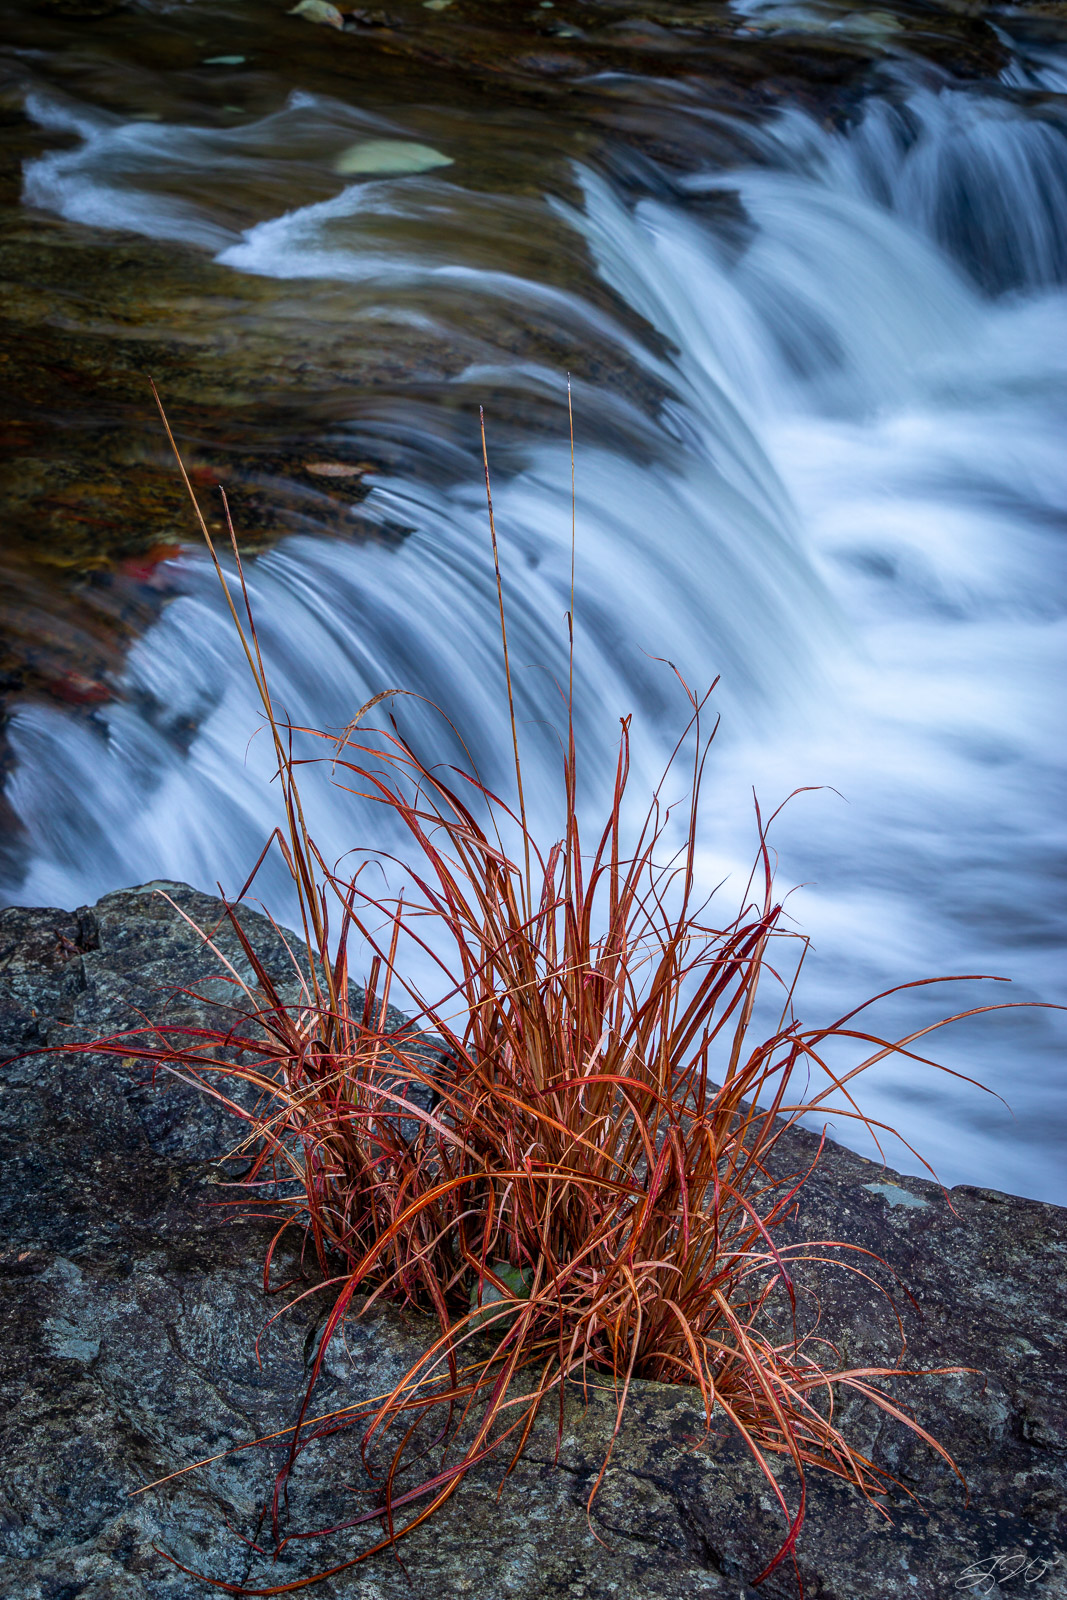 cascades, waterfall, composition, grass, long exposure, strength, simple, nature, photo